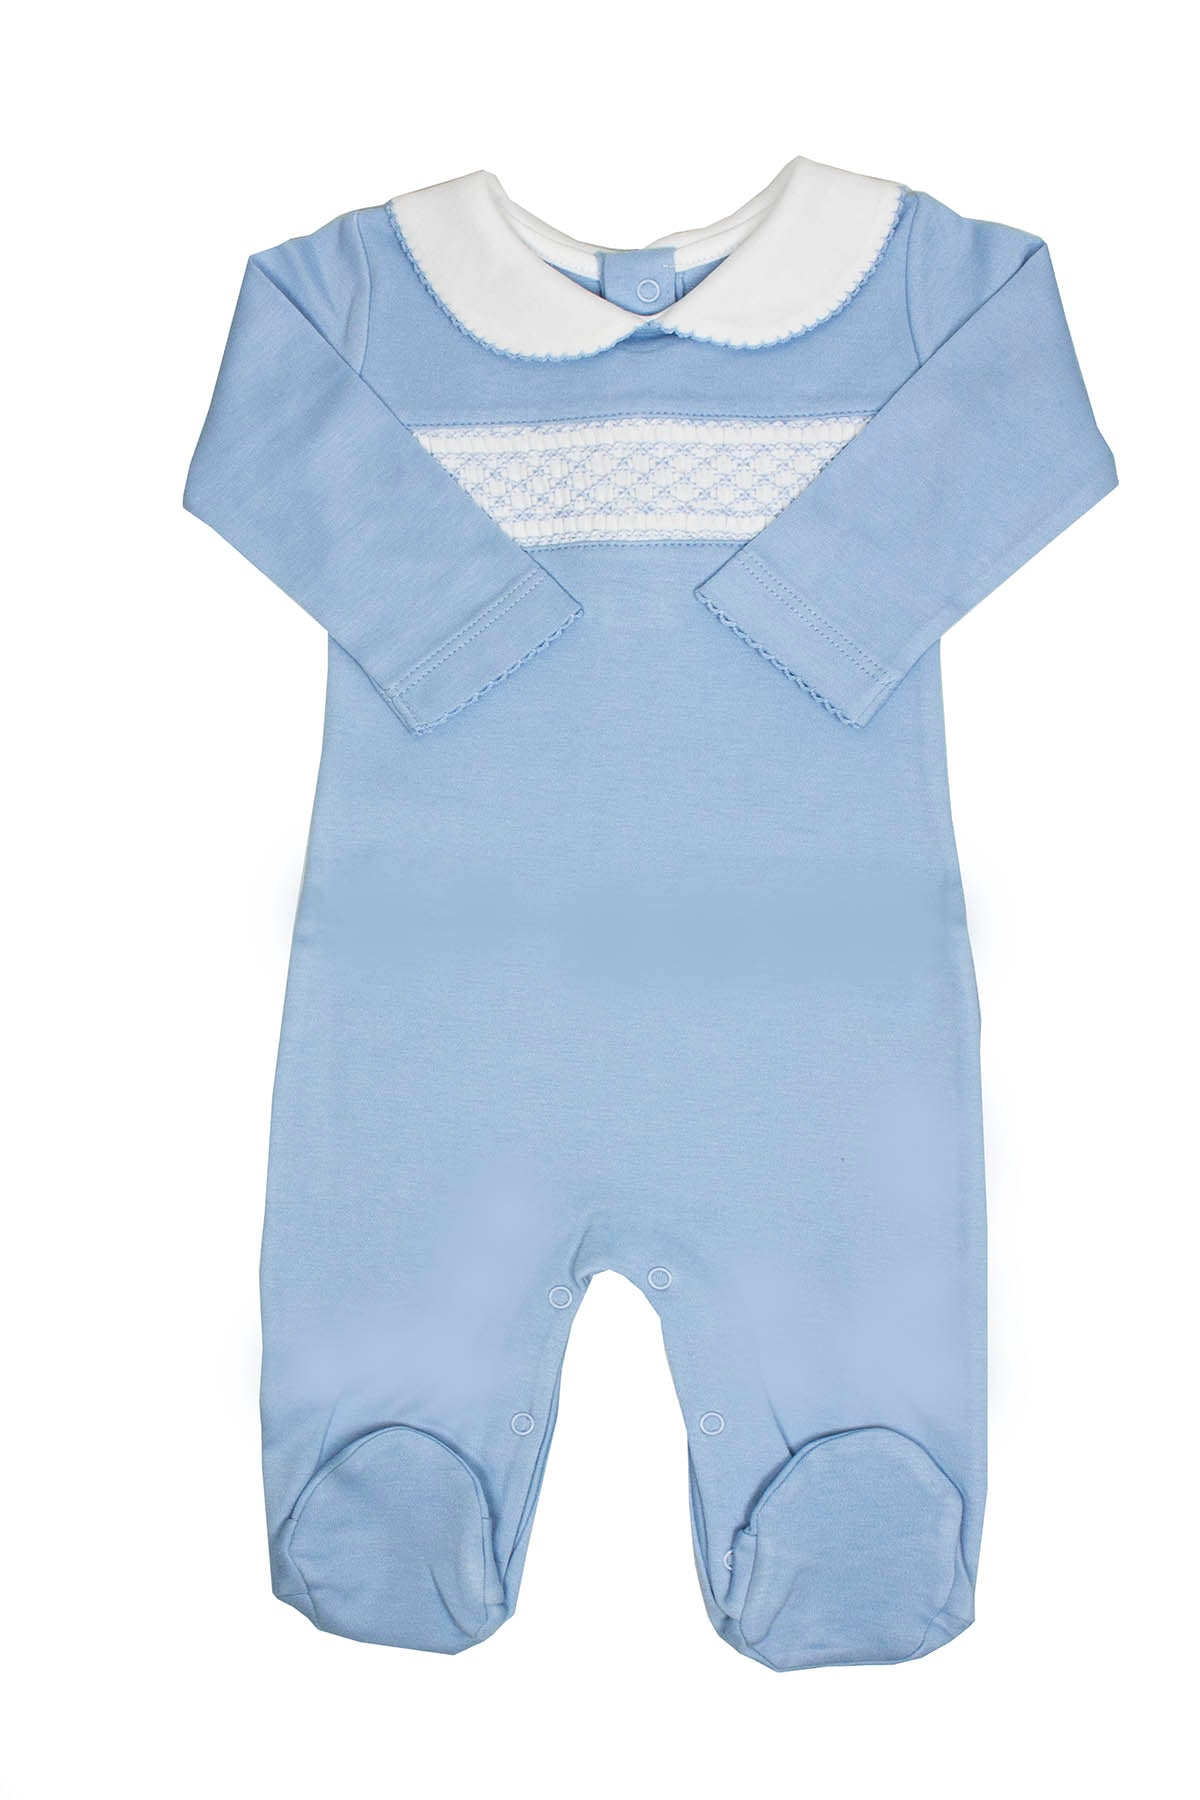 Cotton Blue Pajama with white Smock Pima Cotton